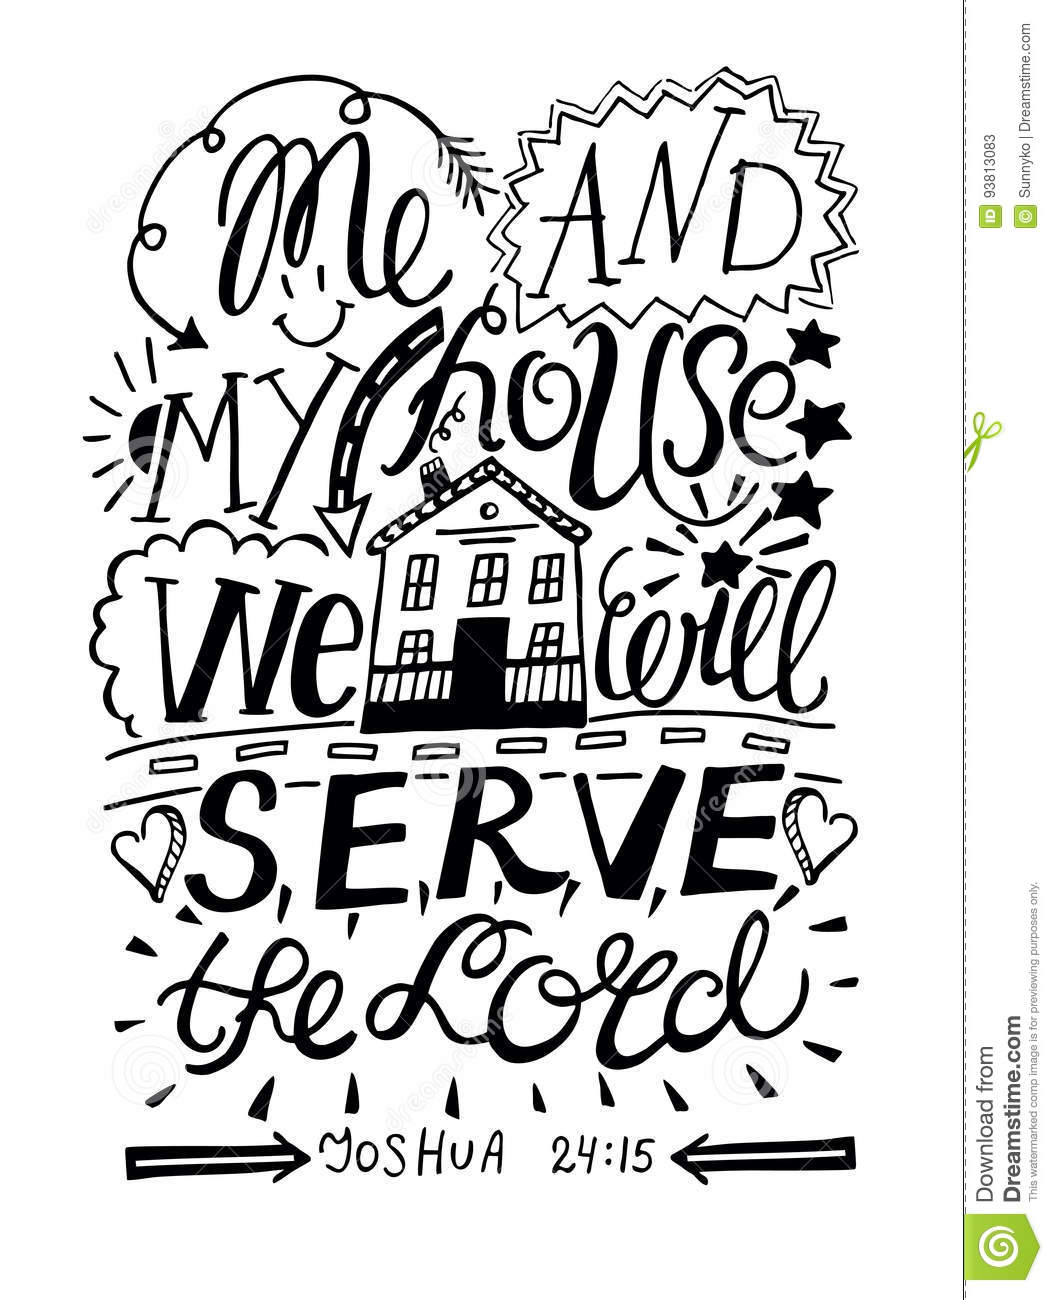 Faerlmarie Coloring Pages: 32 As For Me And My House We